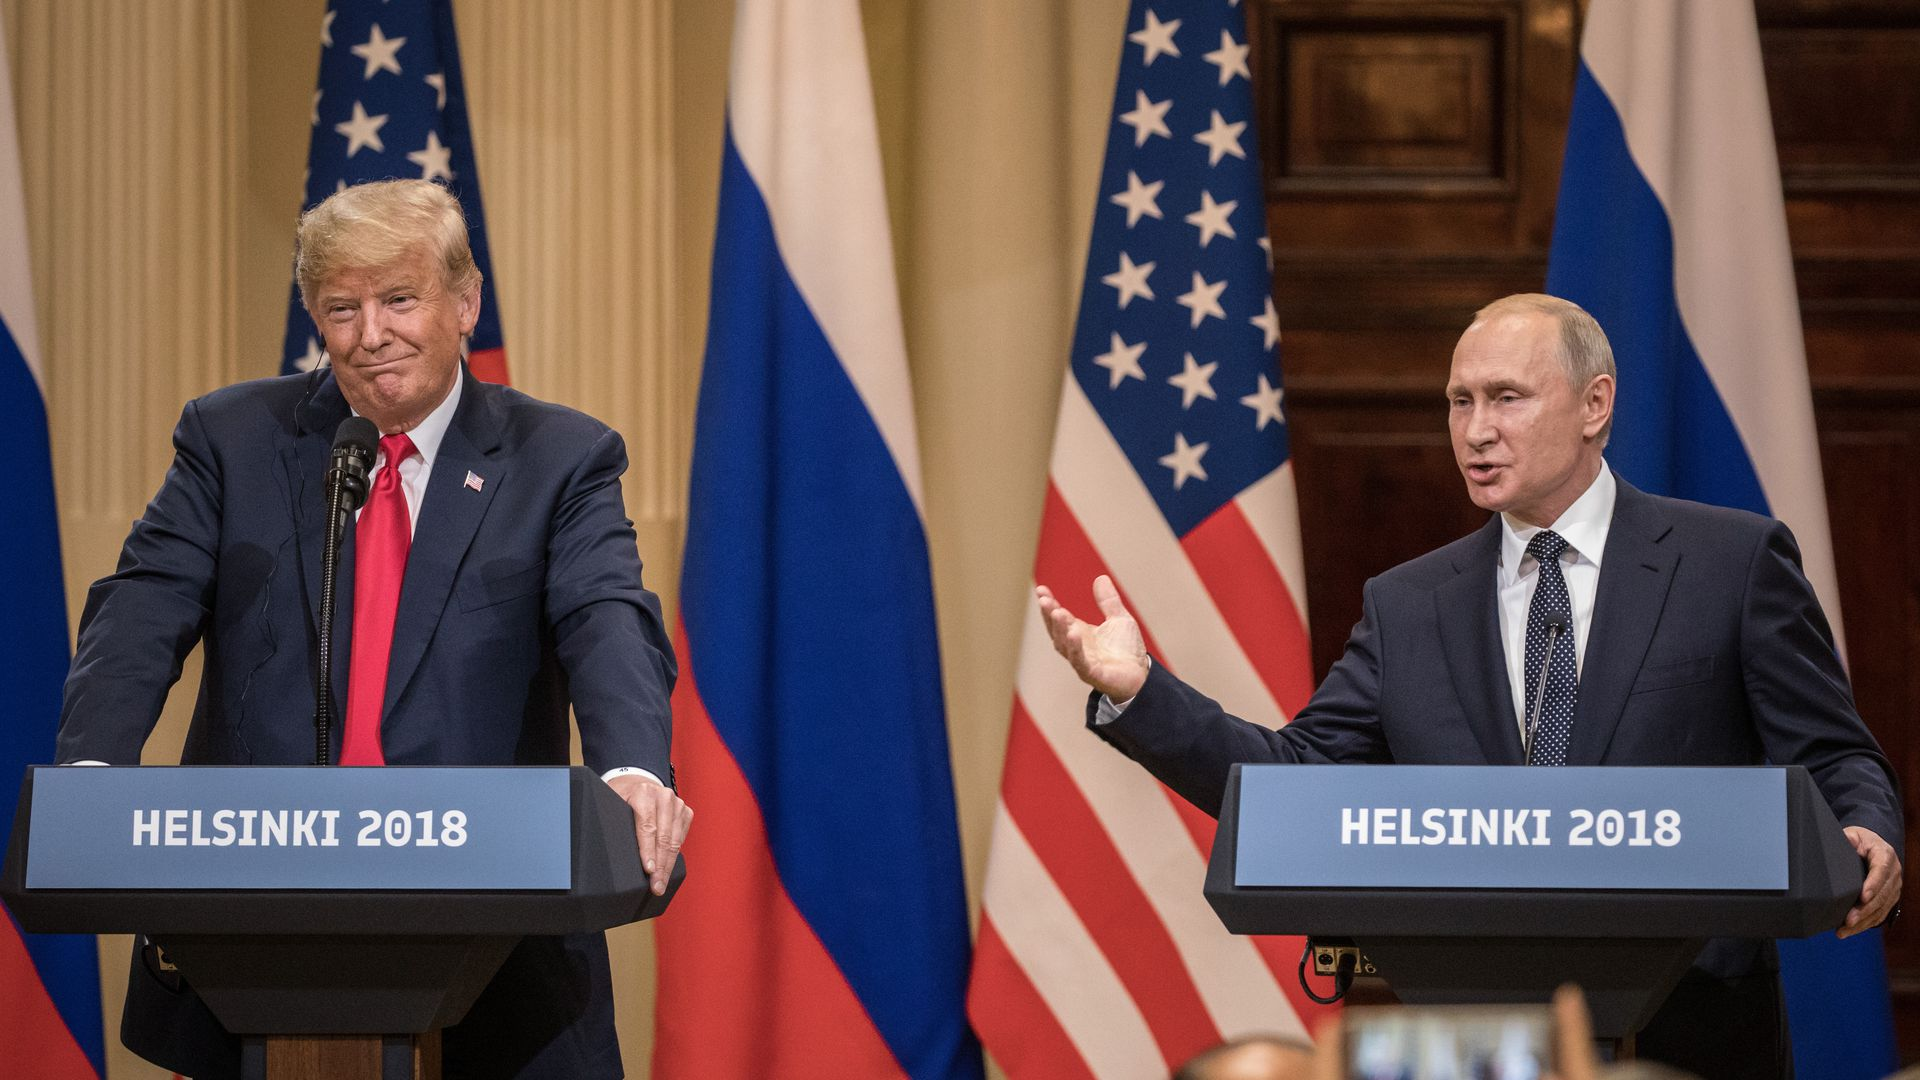 Trump and Putin in Helsinki at podiums speaking.